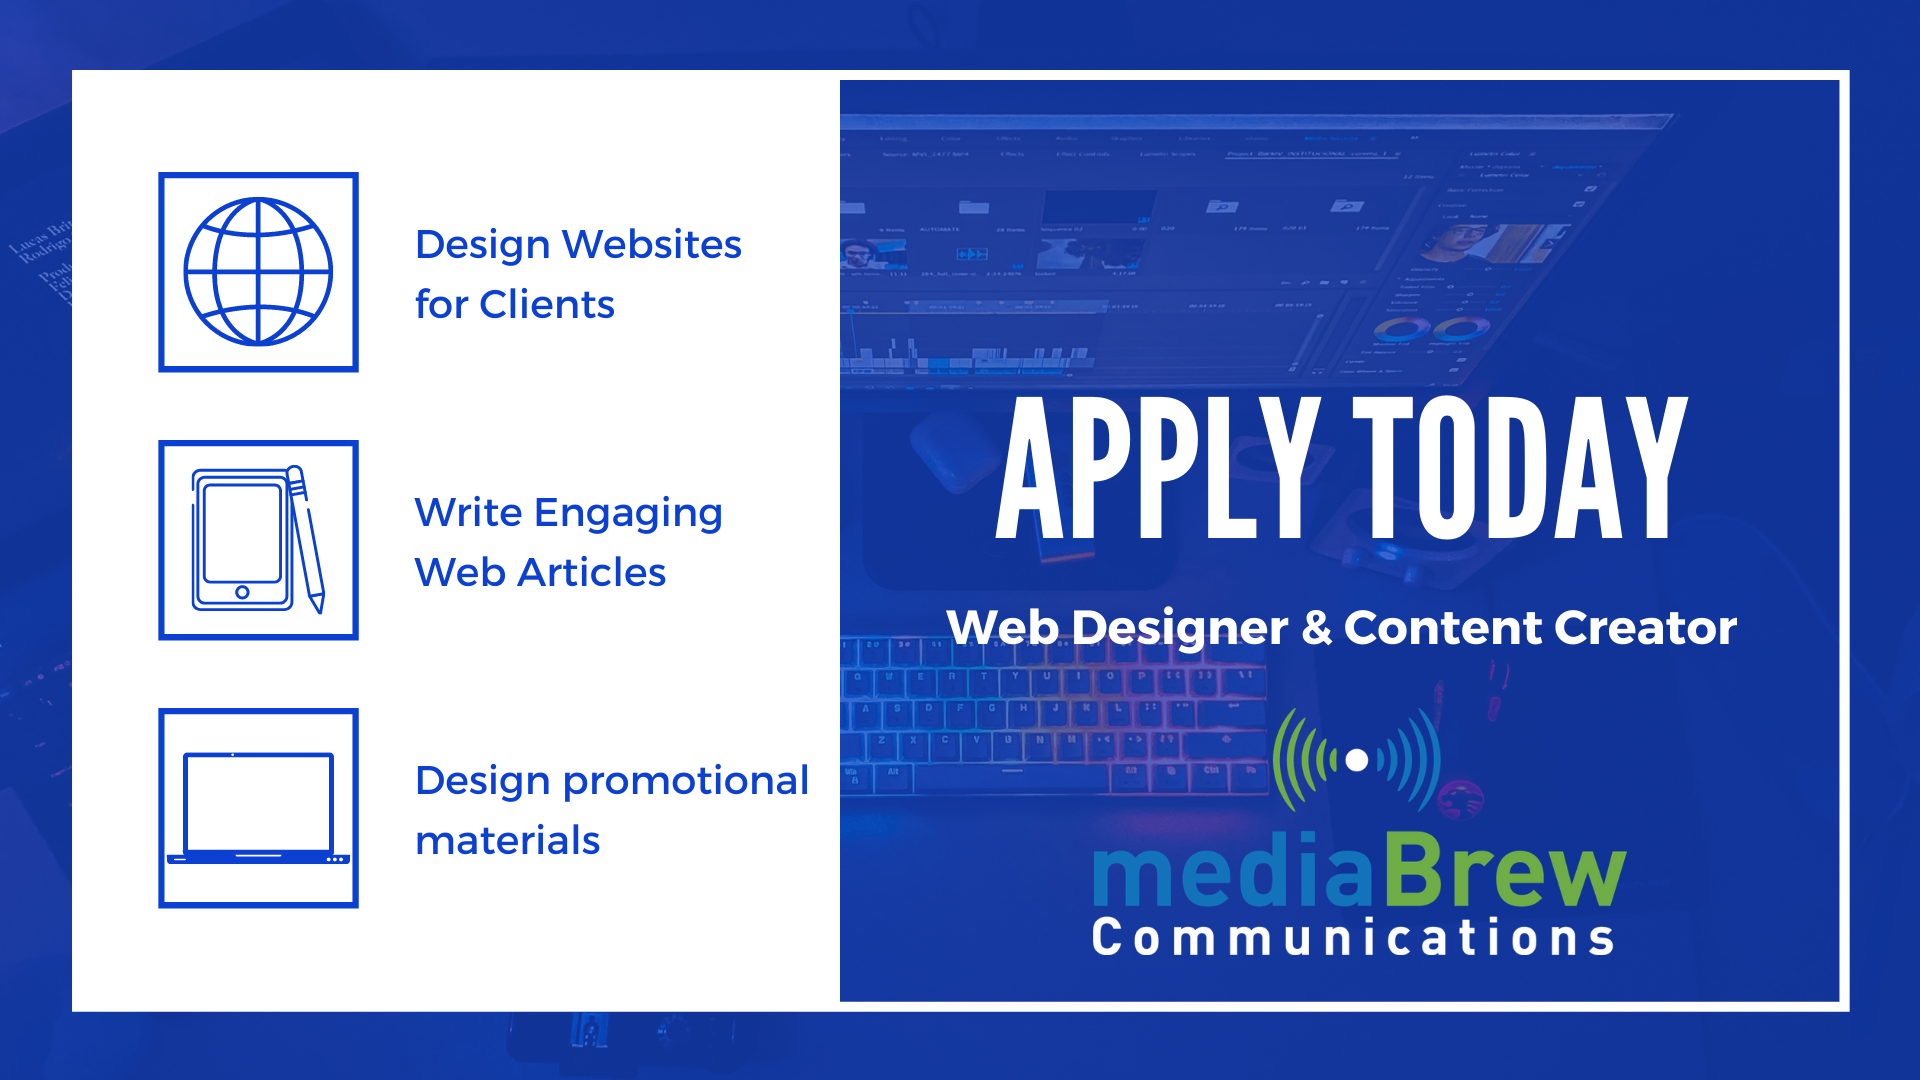 Apply to work as a Web Designer and Content Creator at mediaBrew